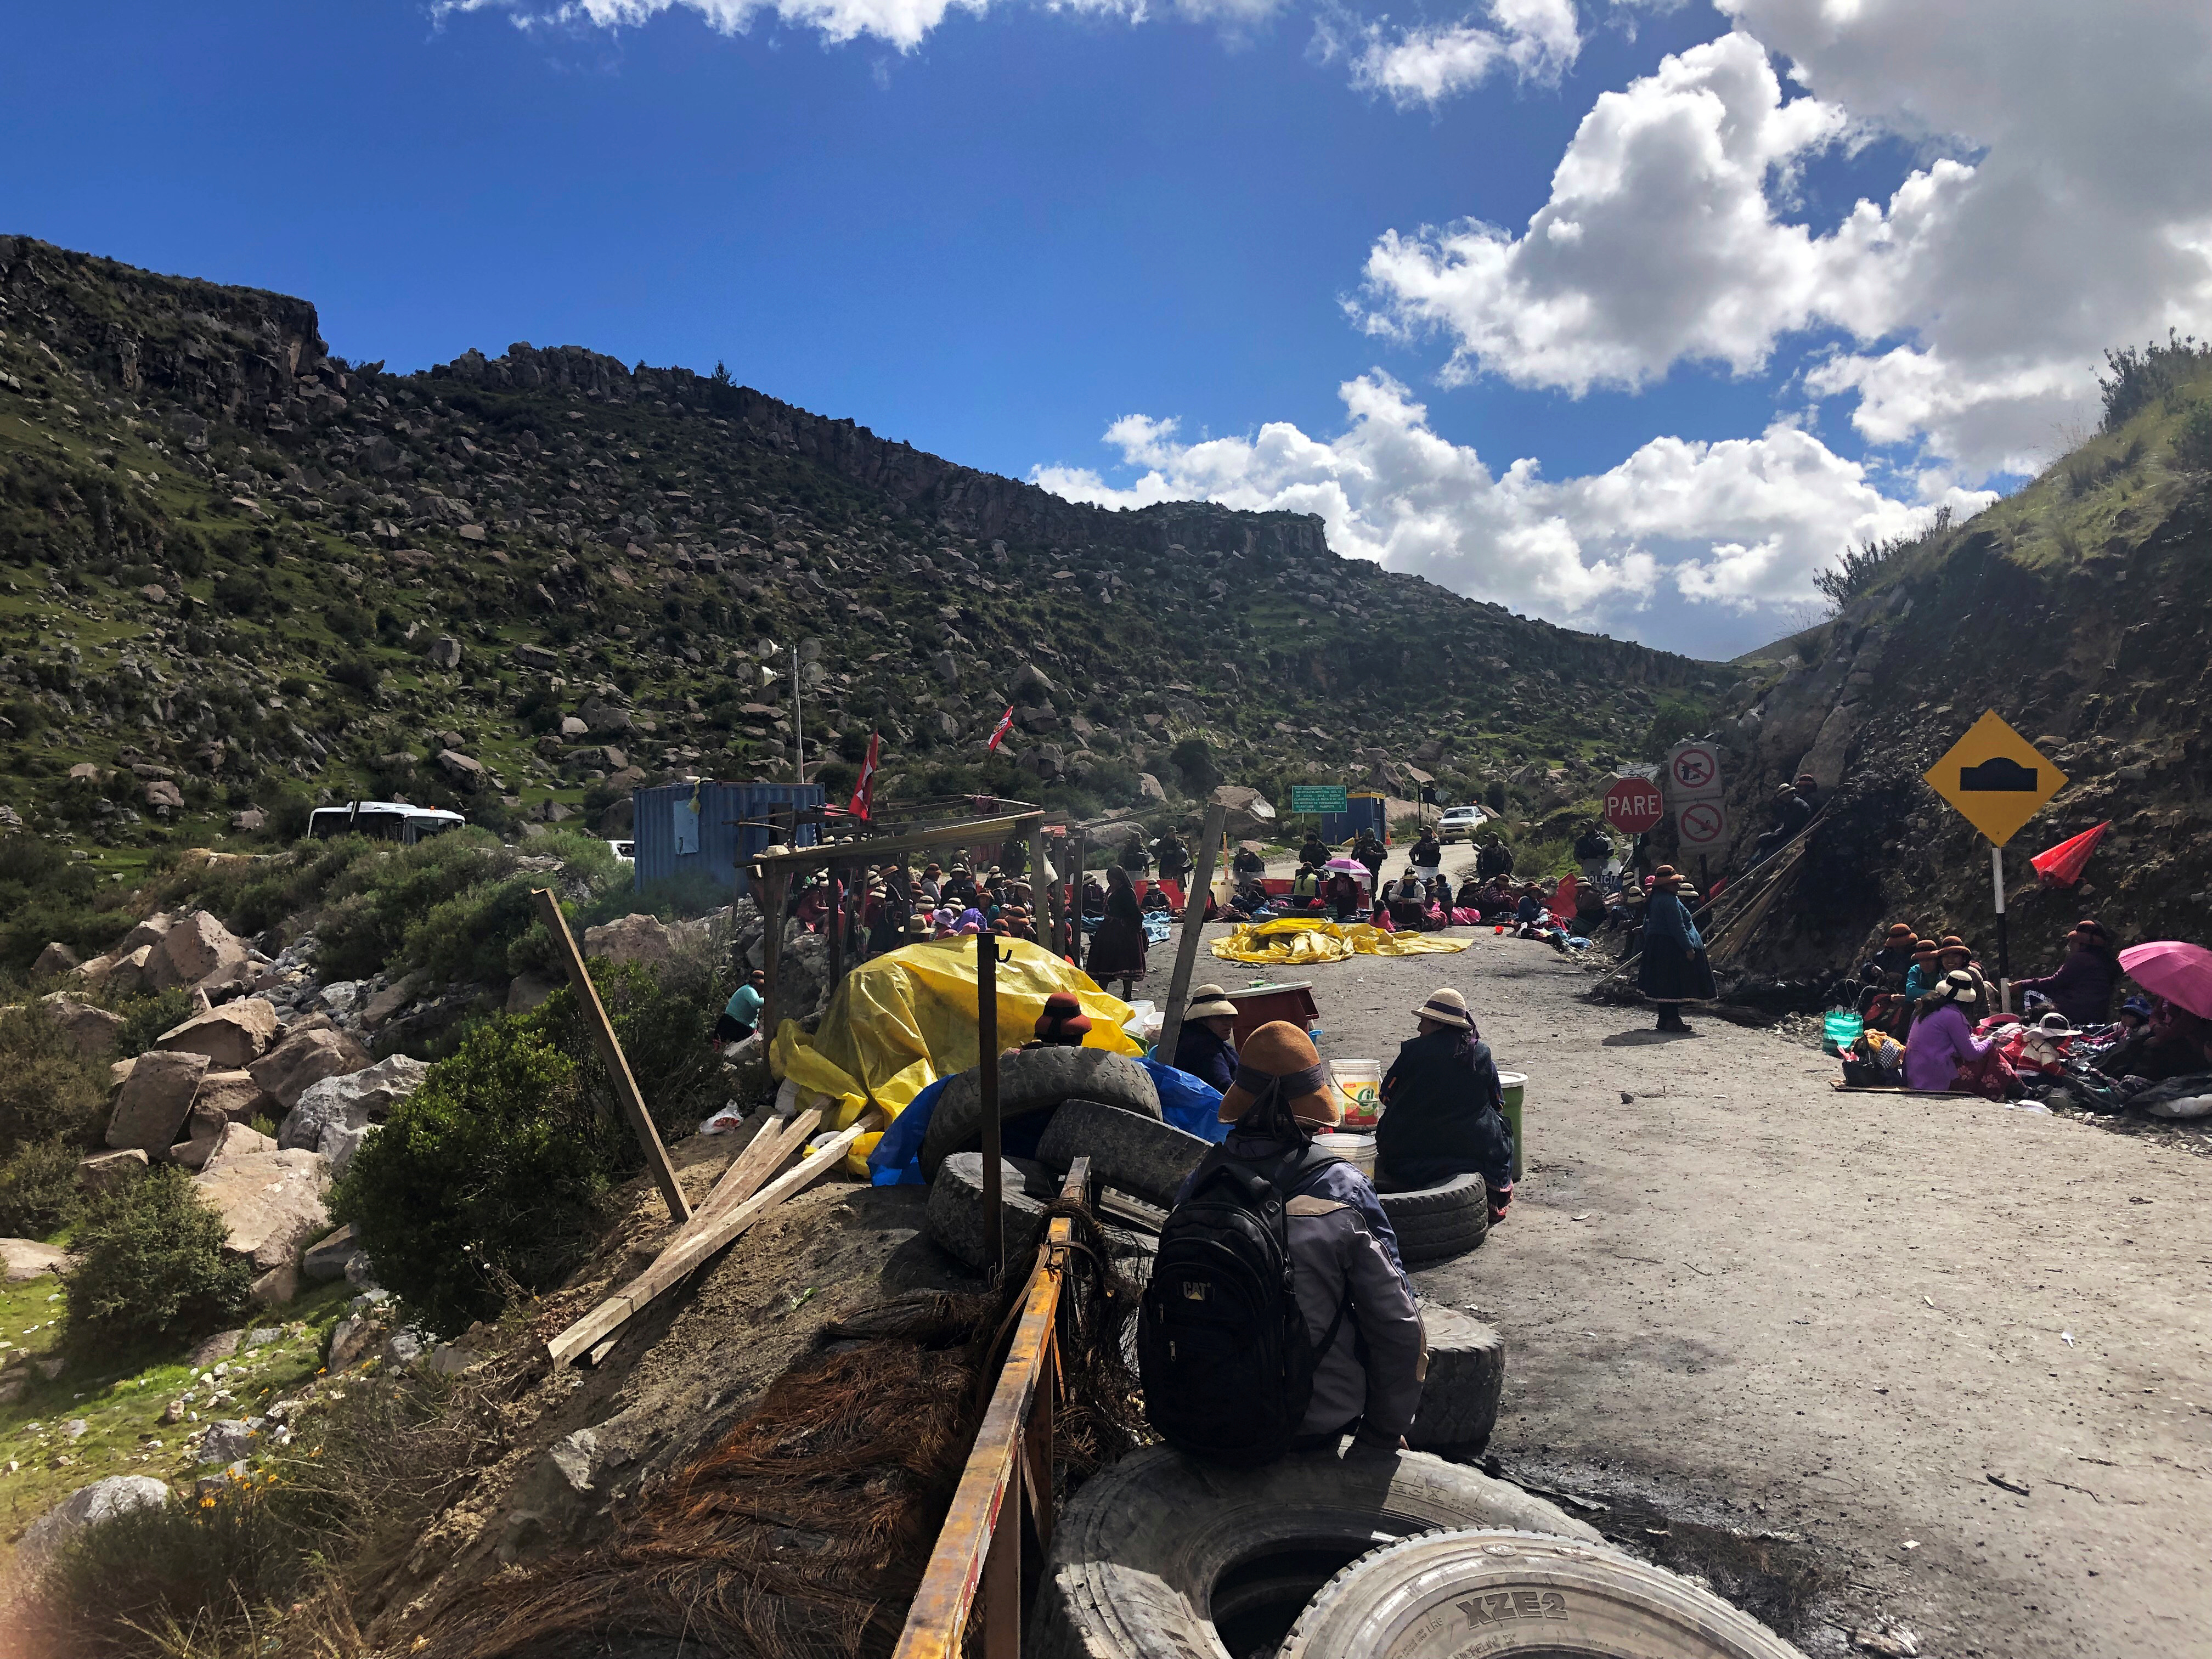 Demonstrators block a road access to a copper mine during a protest in Fuerabamba, Apurimac, Peru March 29, 2019. REUTERS/Mitra Taj